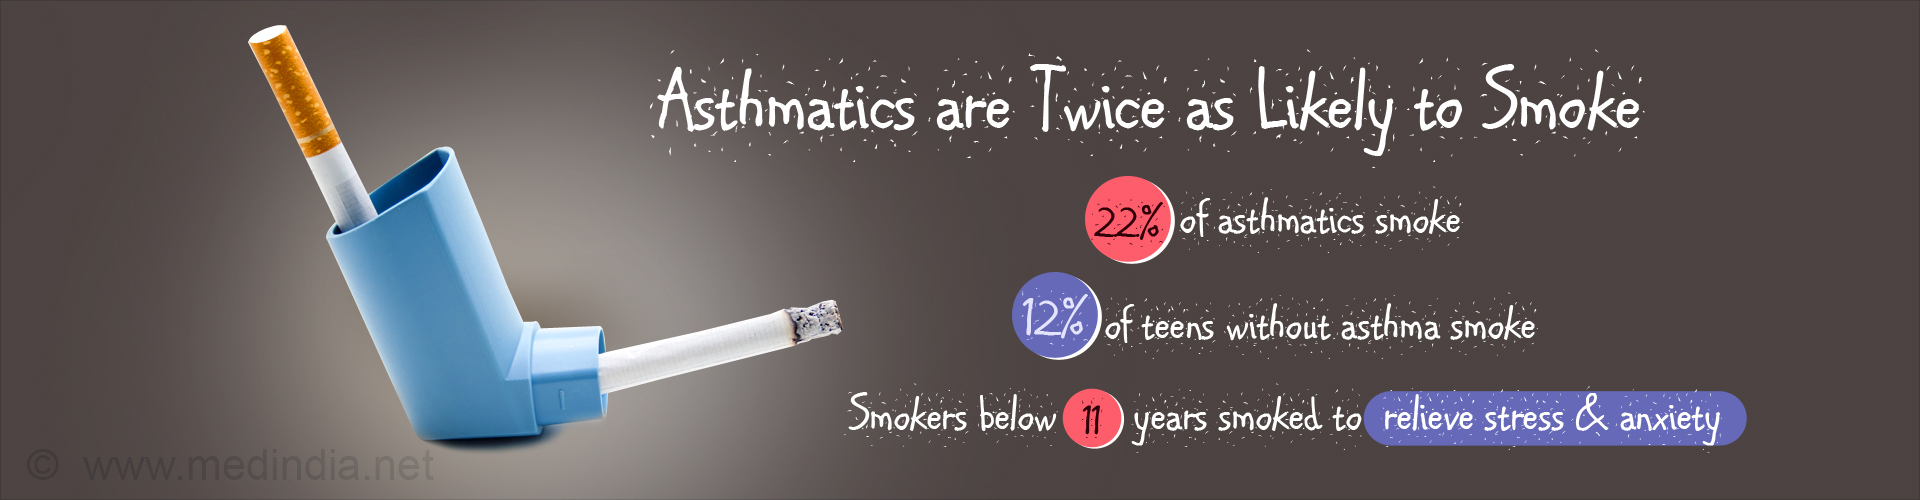 Asthmatics are Twice as Likely to Smoke - 22% of asthmatics smoke - 12% of teens without asthma smoke - Smokers below 11 years smoked to relieve stress & anxiety